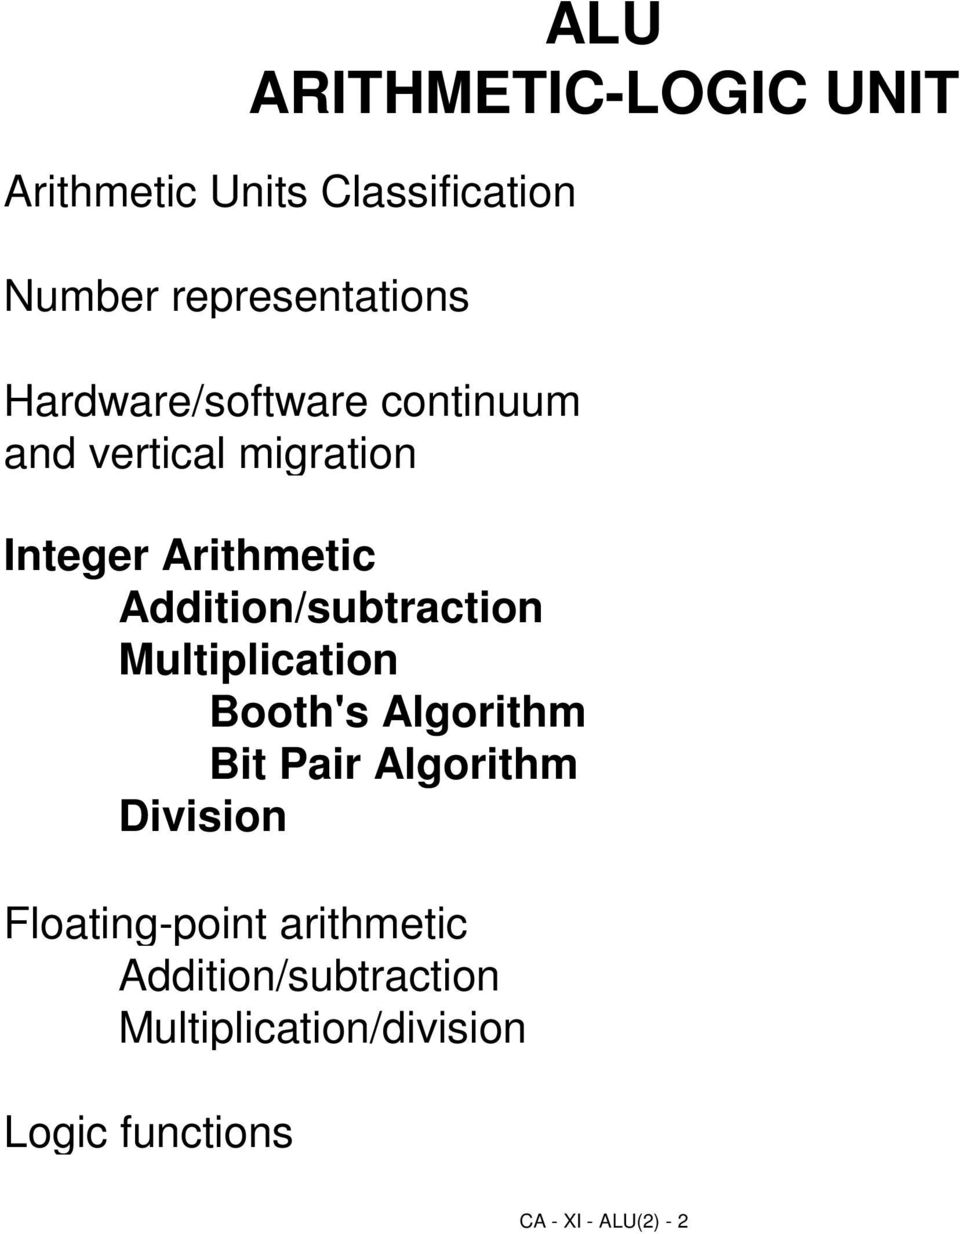 Computer Architecture Alu 2 Integer Arithmetic Pdf Organization Of Systems Addition Subtraction Multiplication Booths Algorithm Bit Pair Division